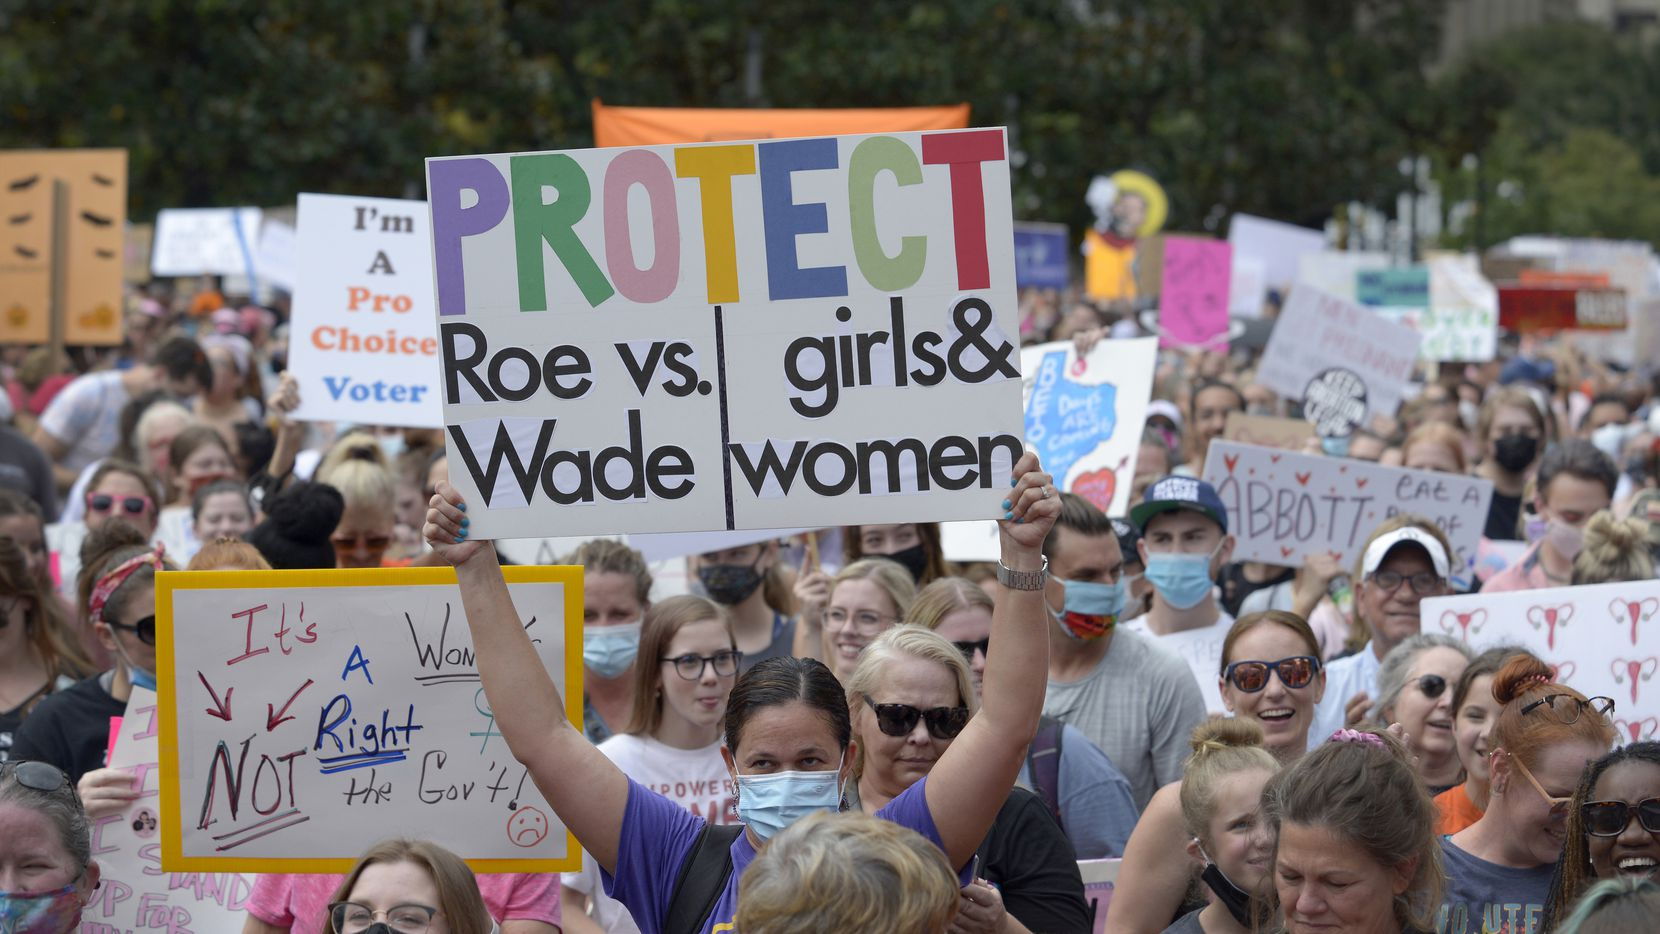 An estimated 3,000 demonstrators filled Main Street Garden Park and marched on nearby streets in downtown Dallas to rally in favor of stronger protections for women's reproductive rights on Saturday, Oct. 2, 2021.